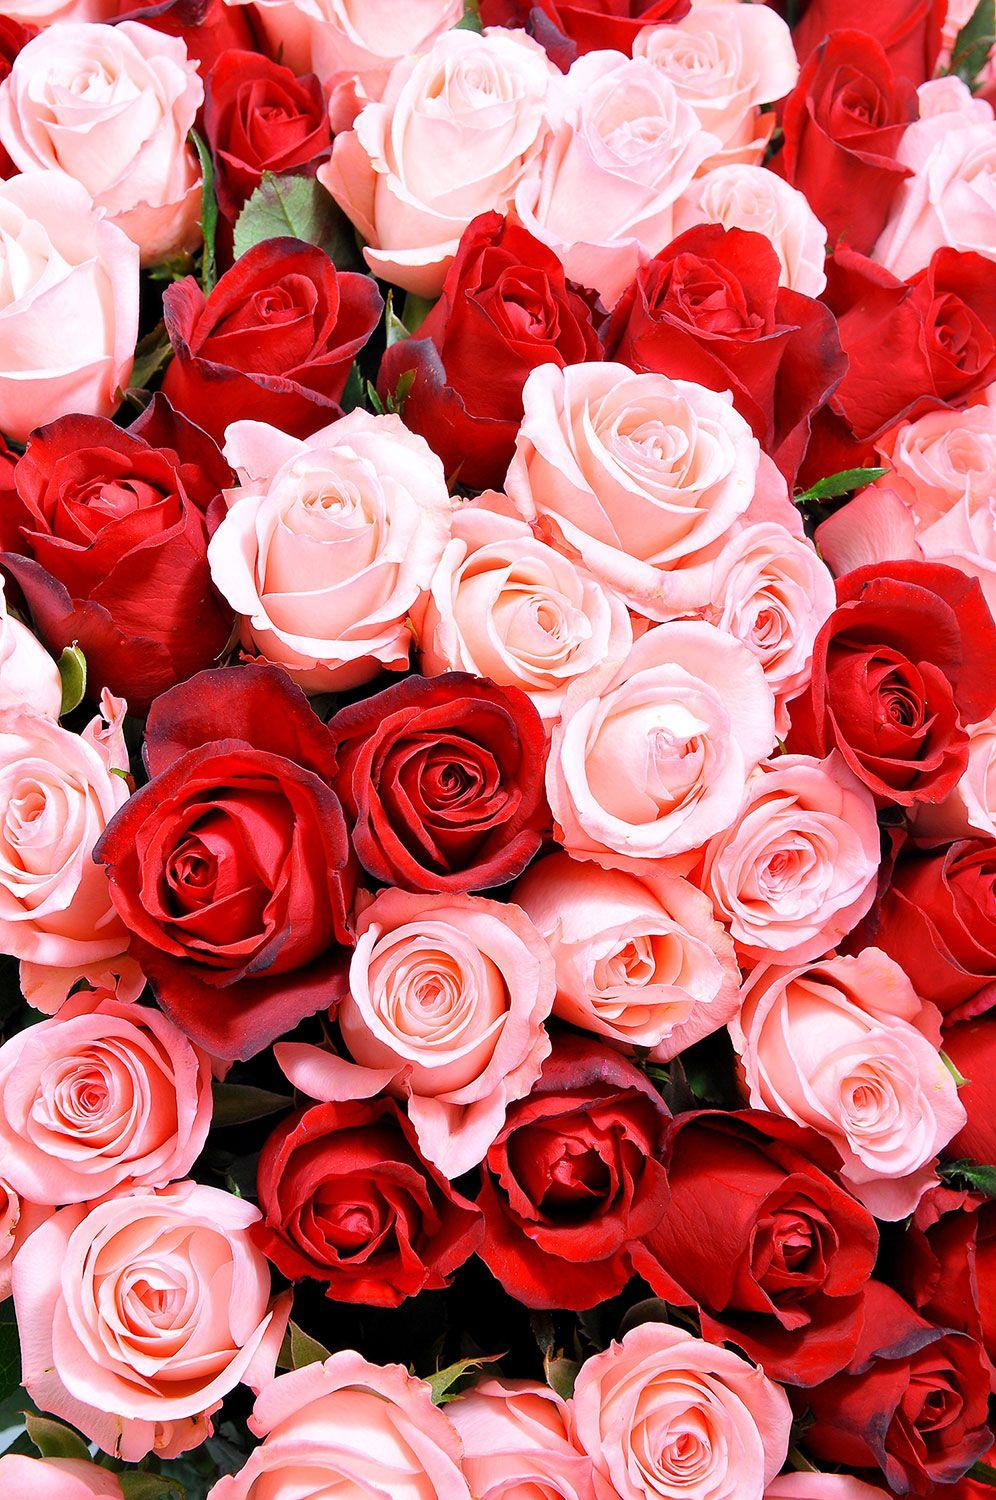 Red And Pink Roses Wallpapers Pics - Wallpaper Cave